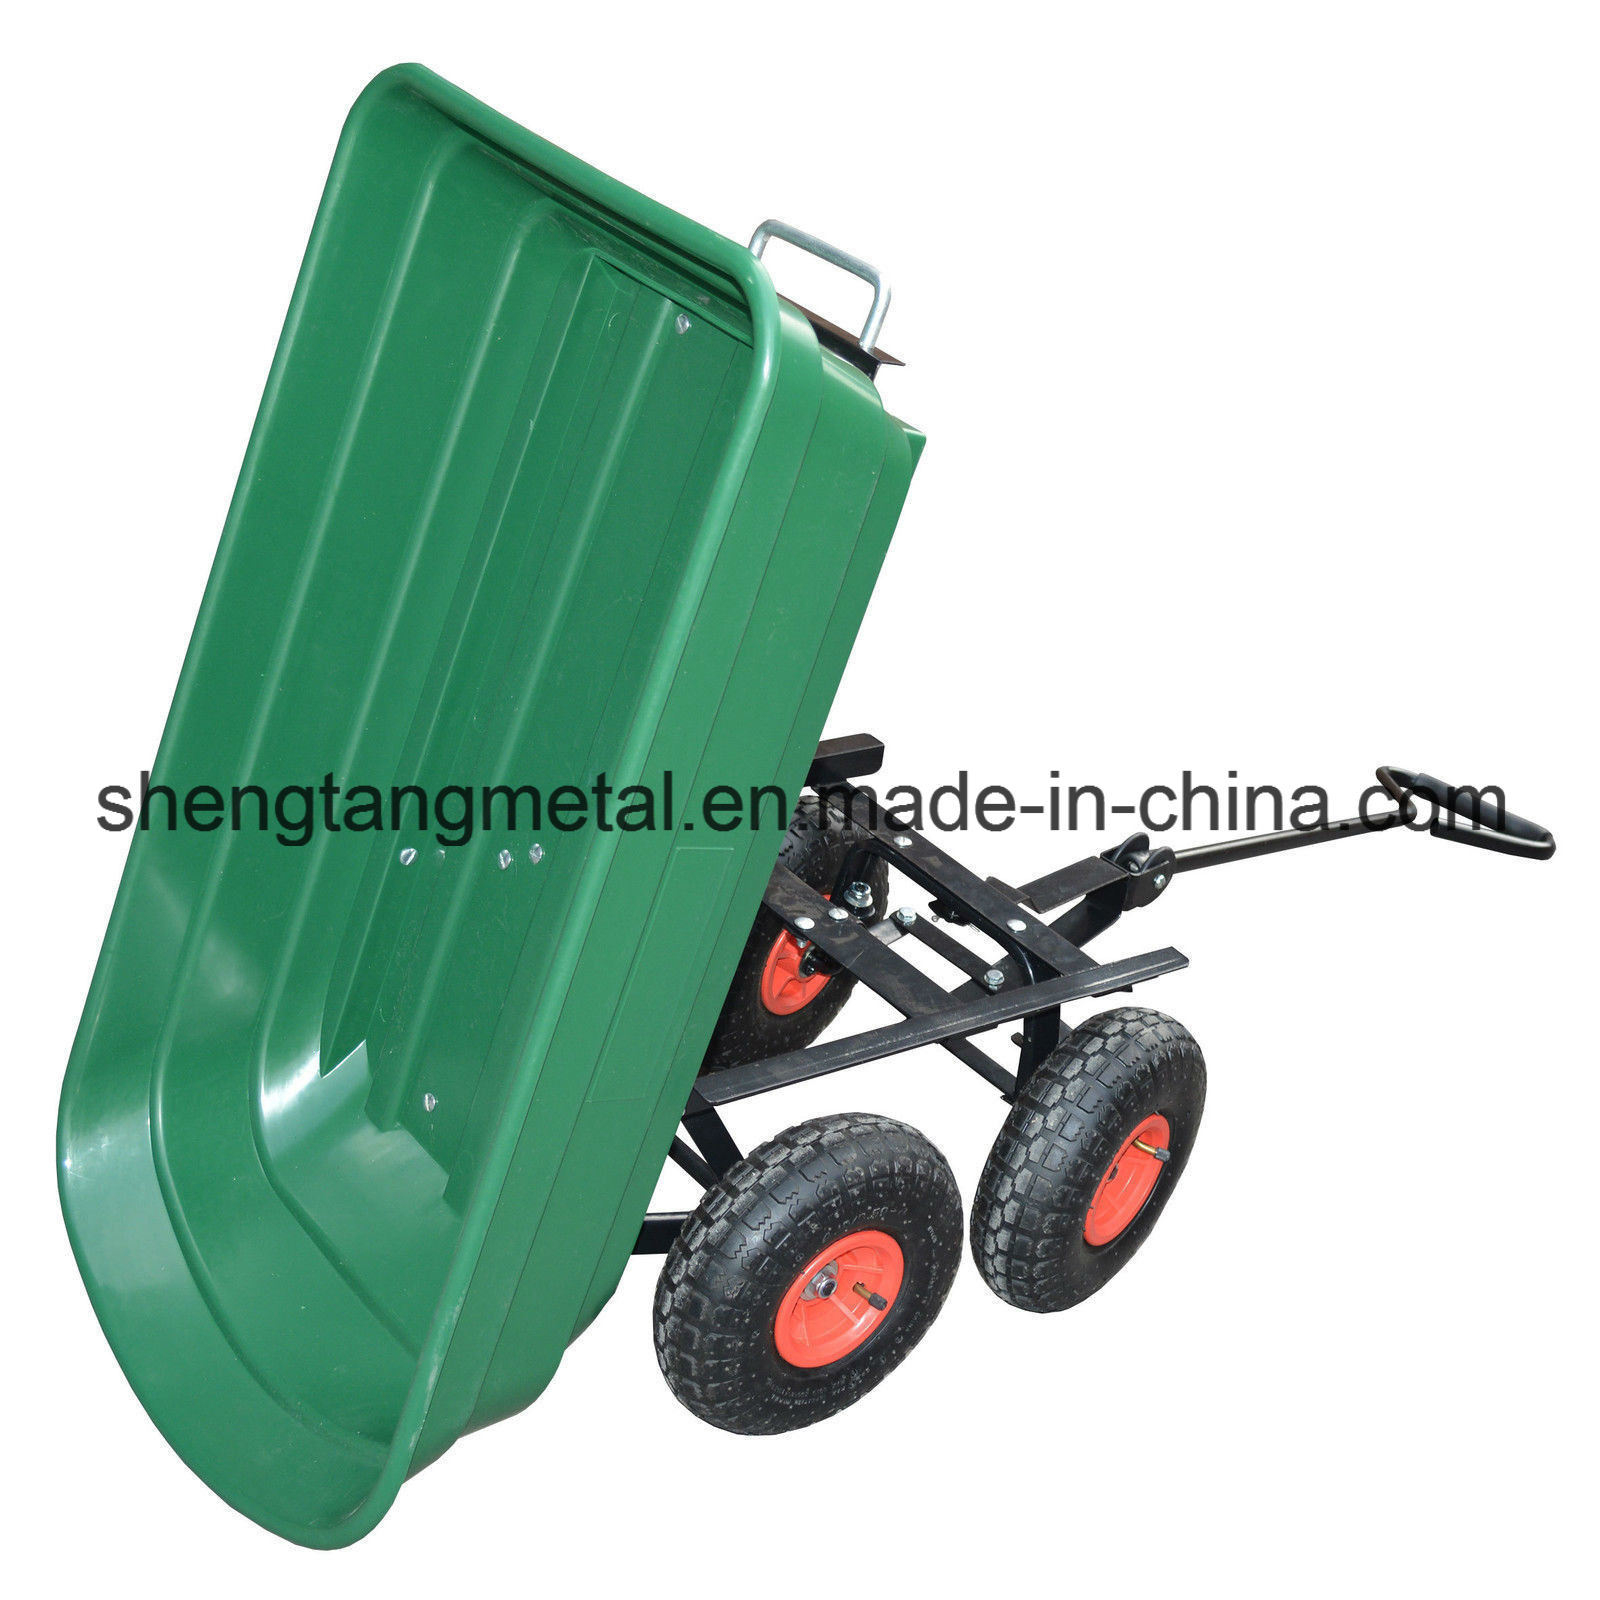 Chine Chariot 4 Roues Chariot De Jardin 75L Sac Chariot ... dedans Chariot De Jardin 4 Roues